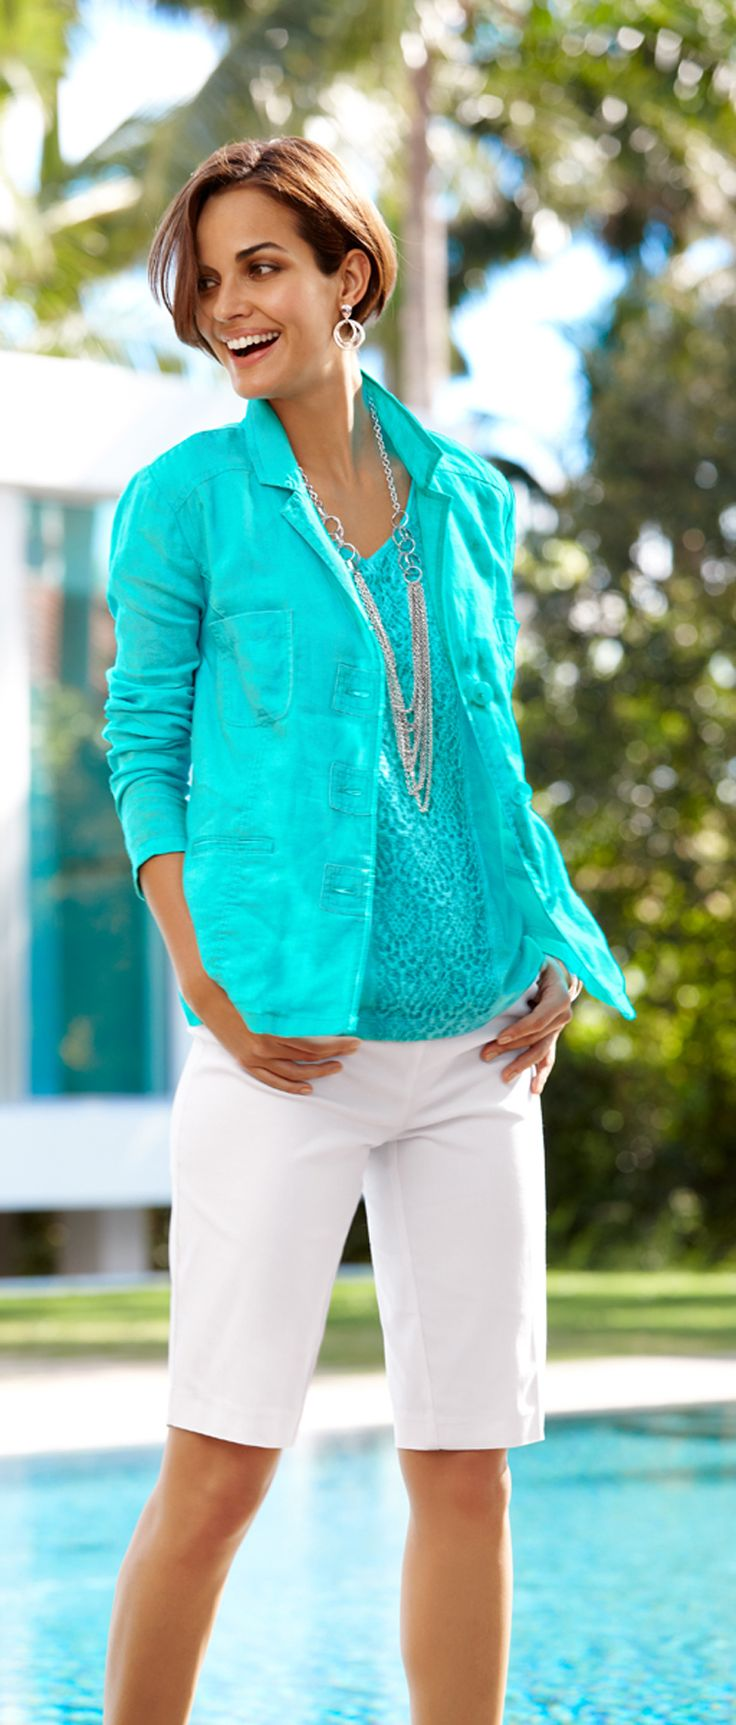 The Linen Safari Jacket over our Feminine Lace Tee. #DestinationFabulous #travel #spring #chicos